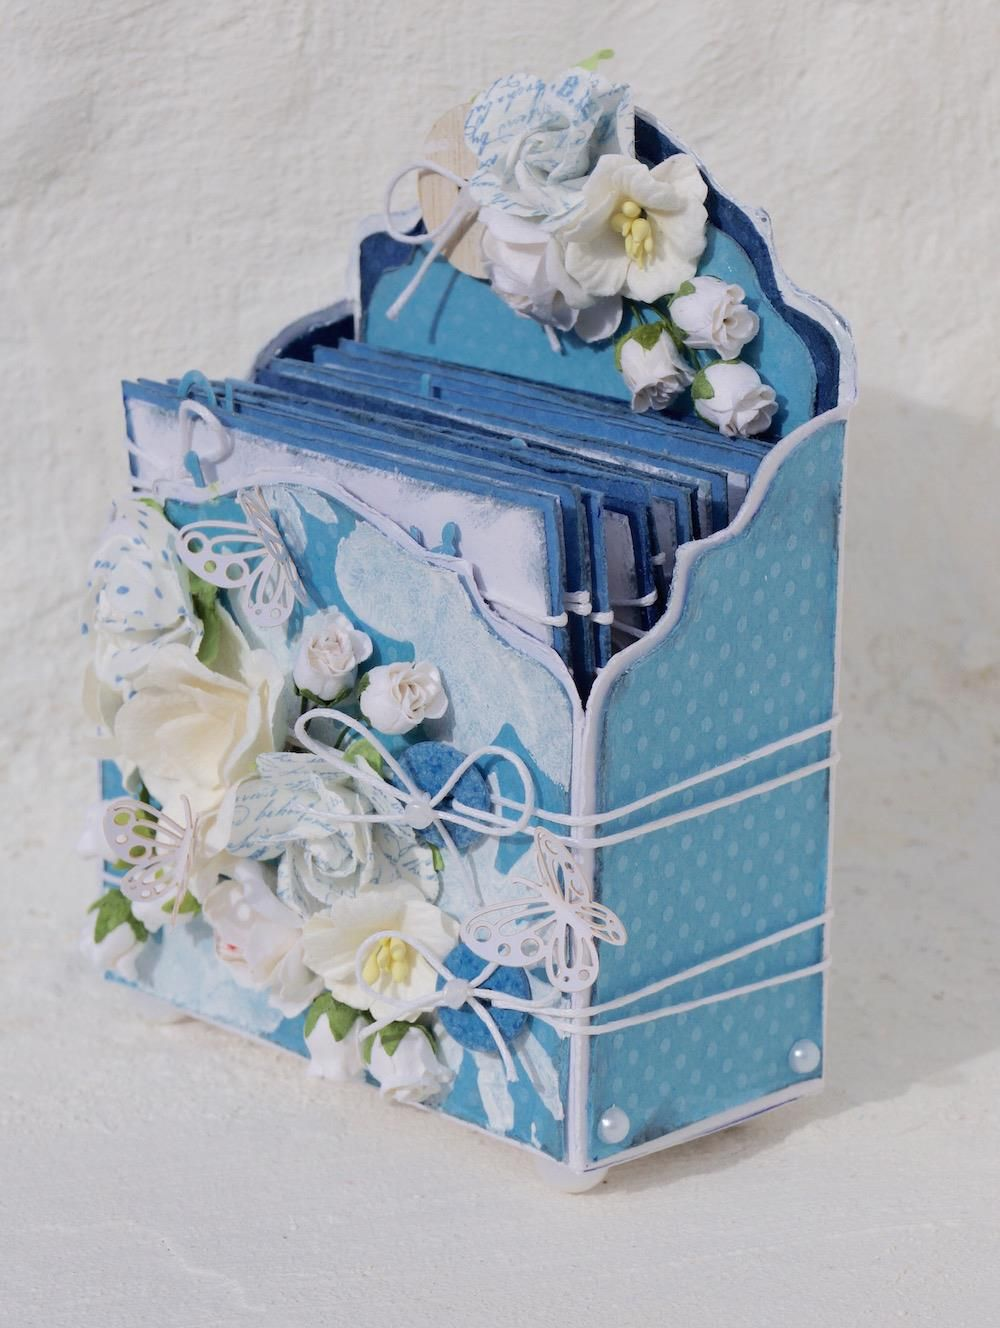 Mitt Lille Papirverksted: Birthday Calendar in a Box and a Tutorial